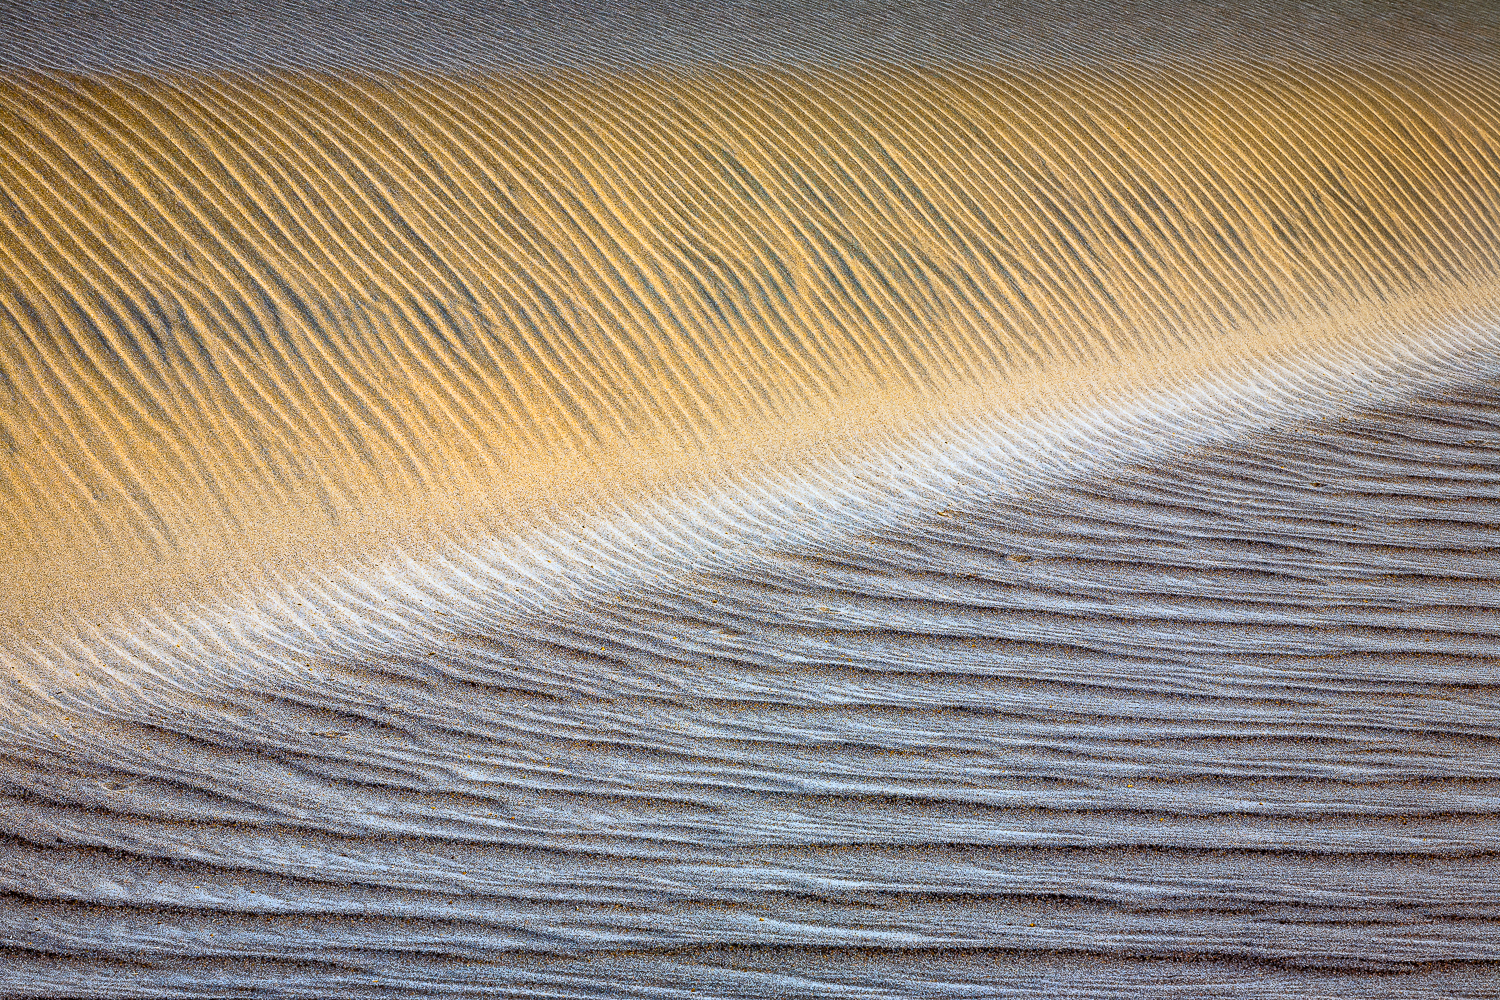 Dunes II (No Footprints)